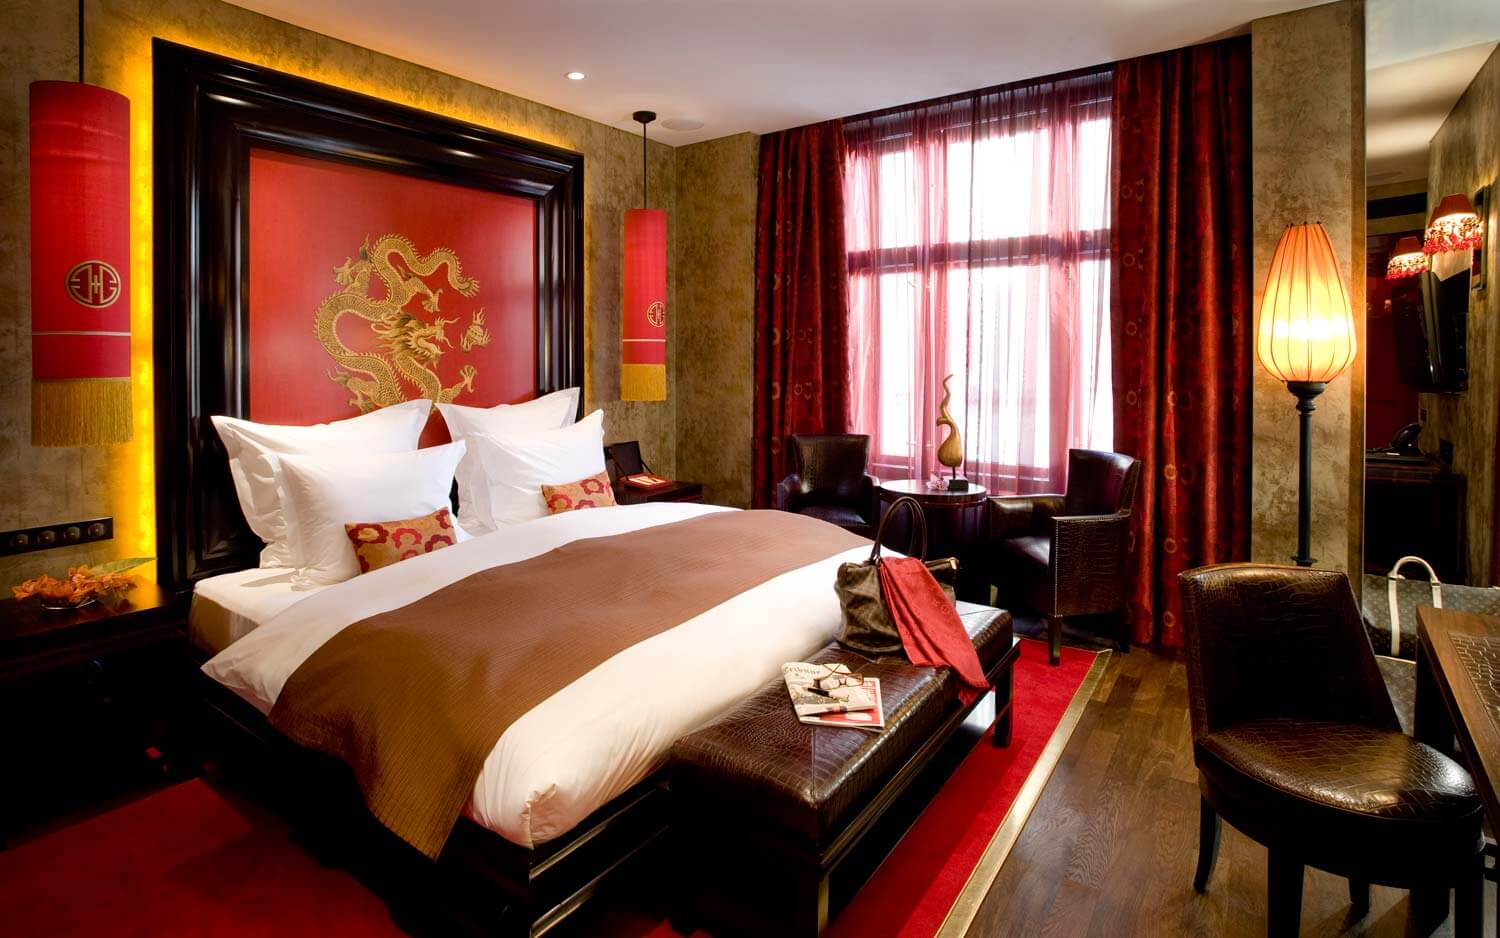 Buddha bar hotel prague luxury 5 star hotel prague for Luxury hotels prague